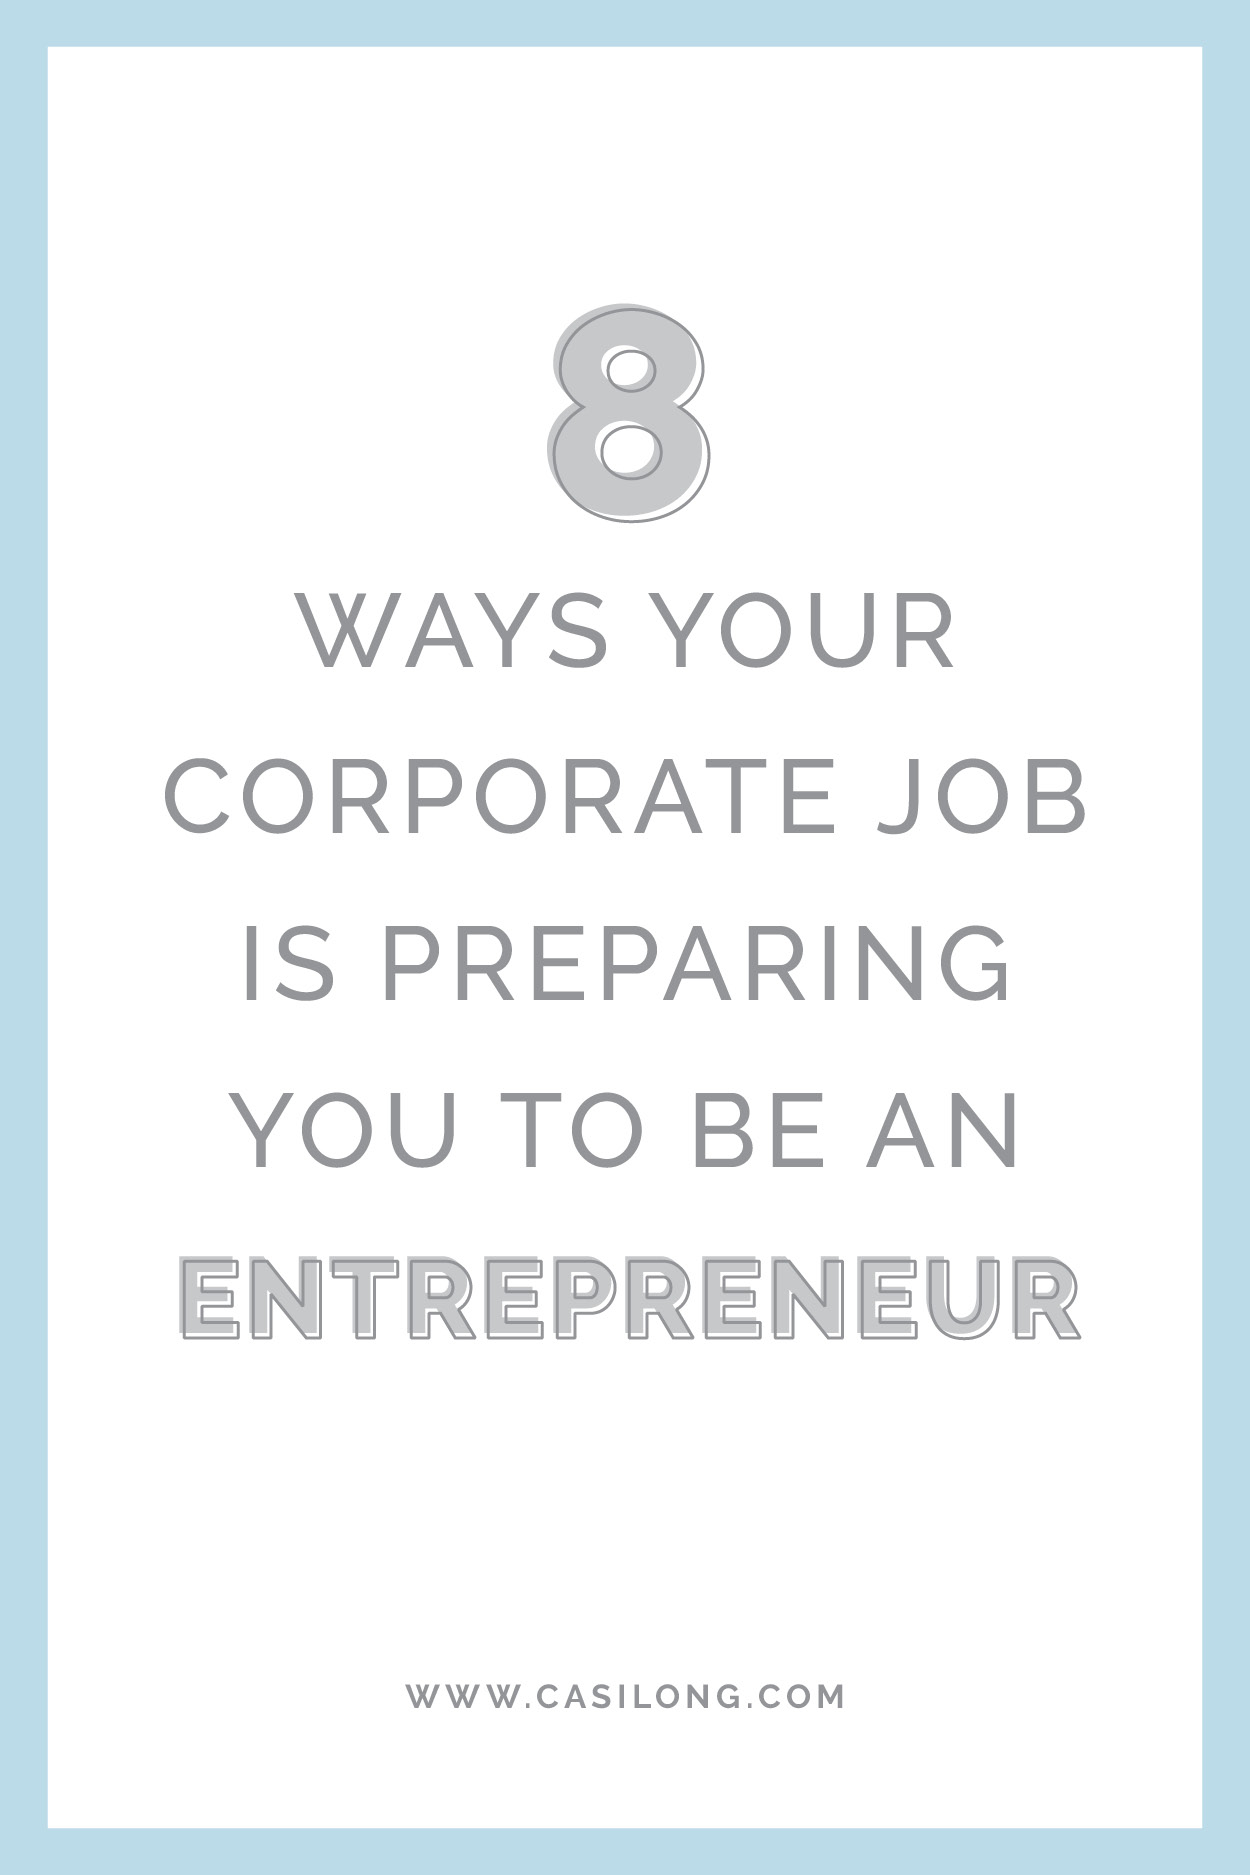 8 ways your corporate job in preparing you to be an entrepreneur | casilong.com/blog